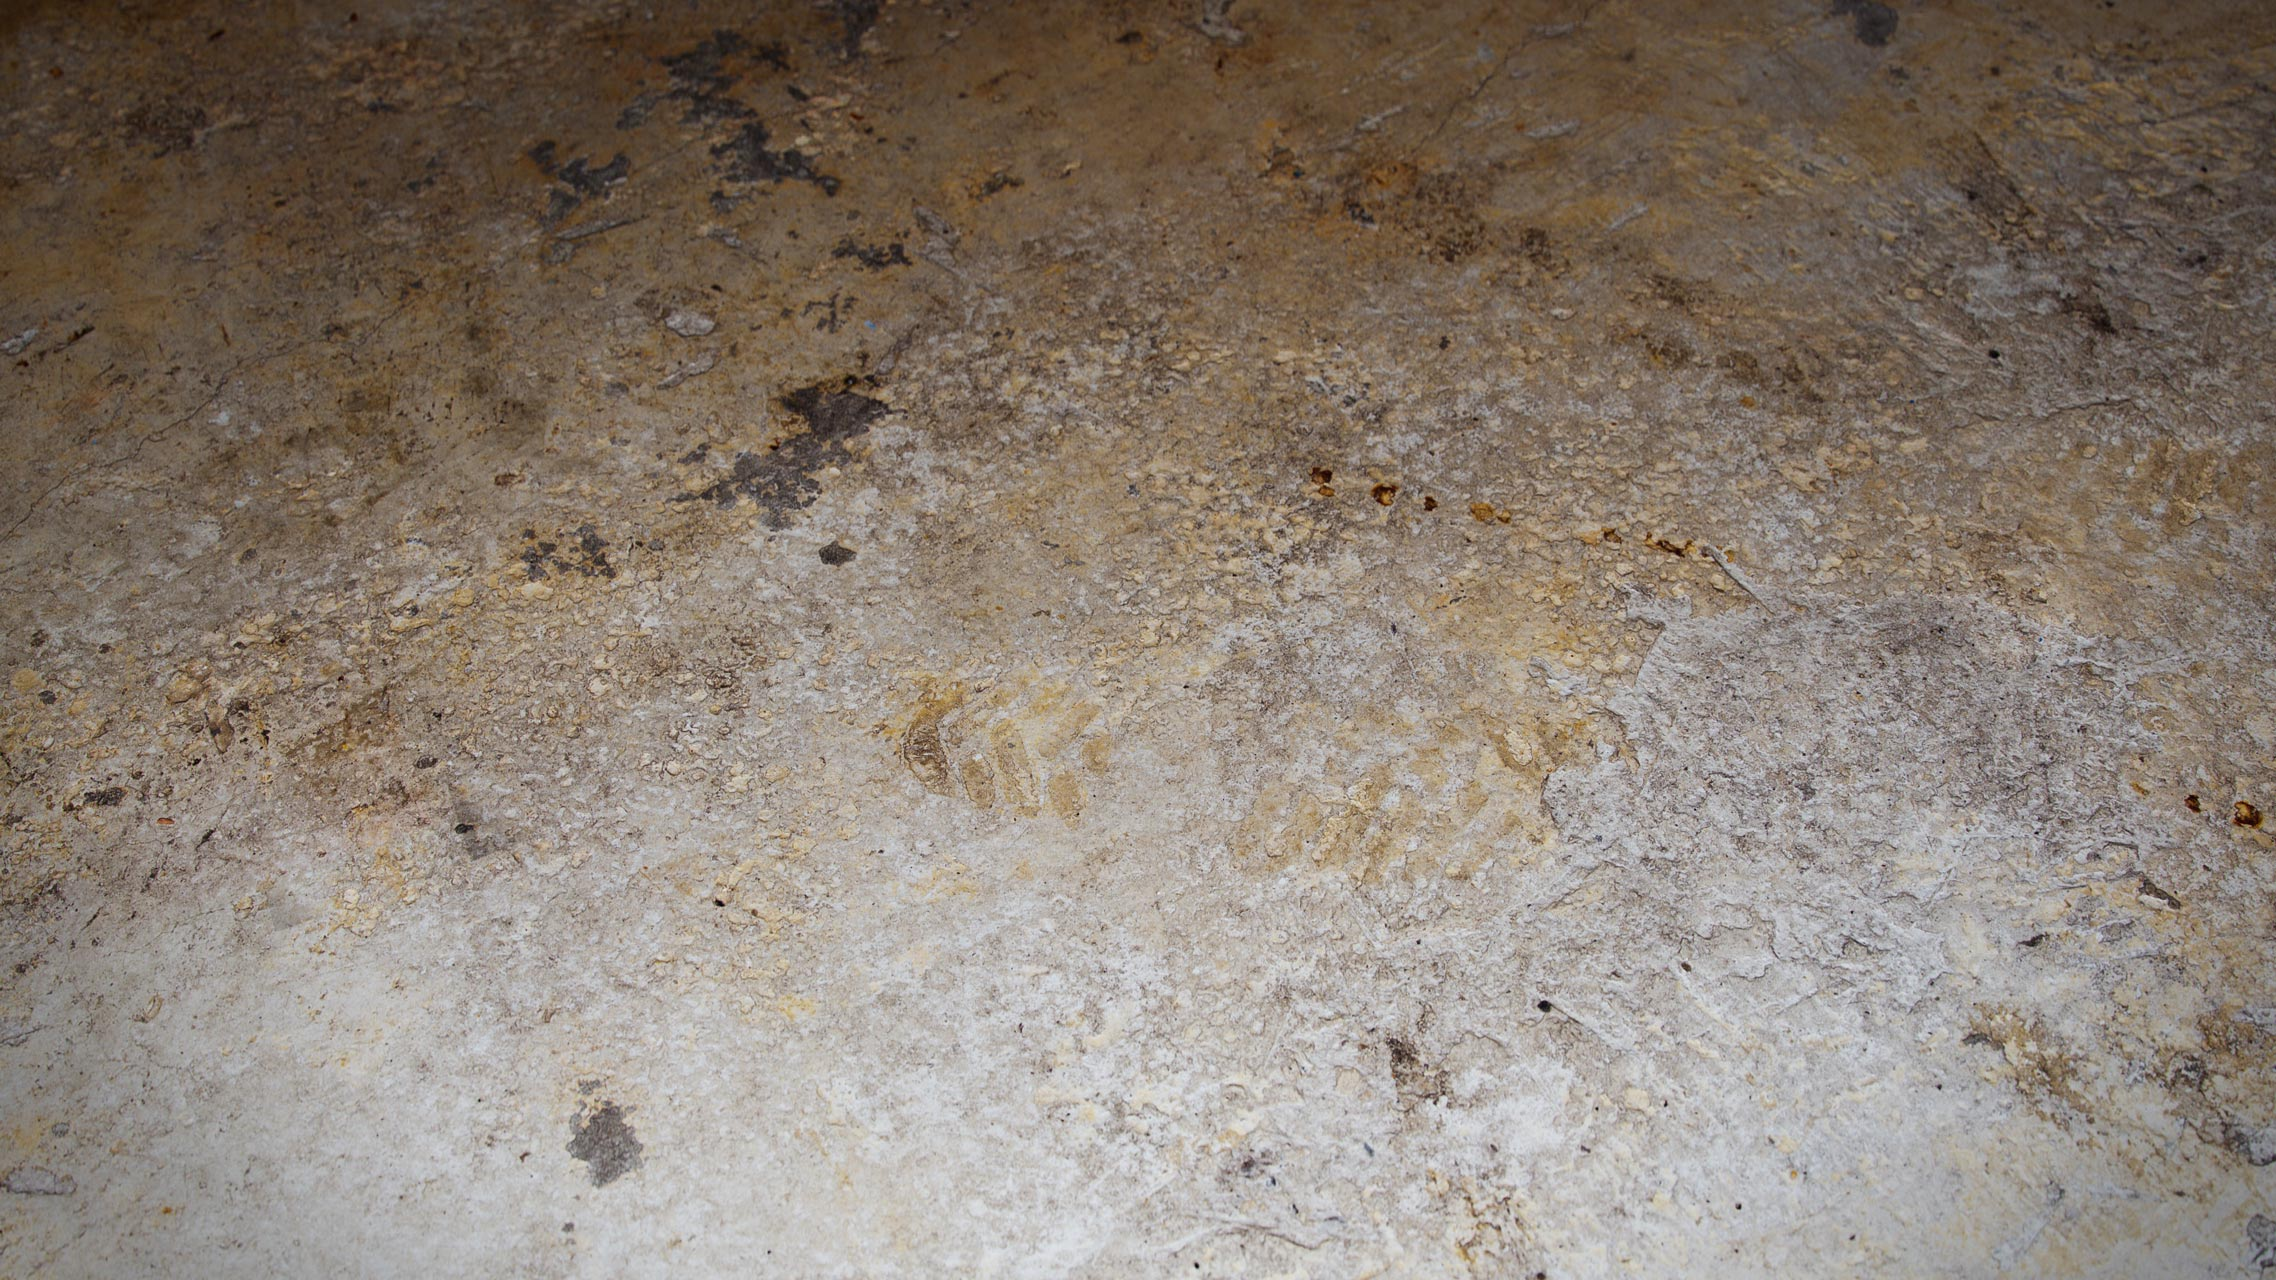 The image shows a bare concrete floor render made using Friendly Shade textures